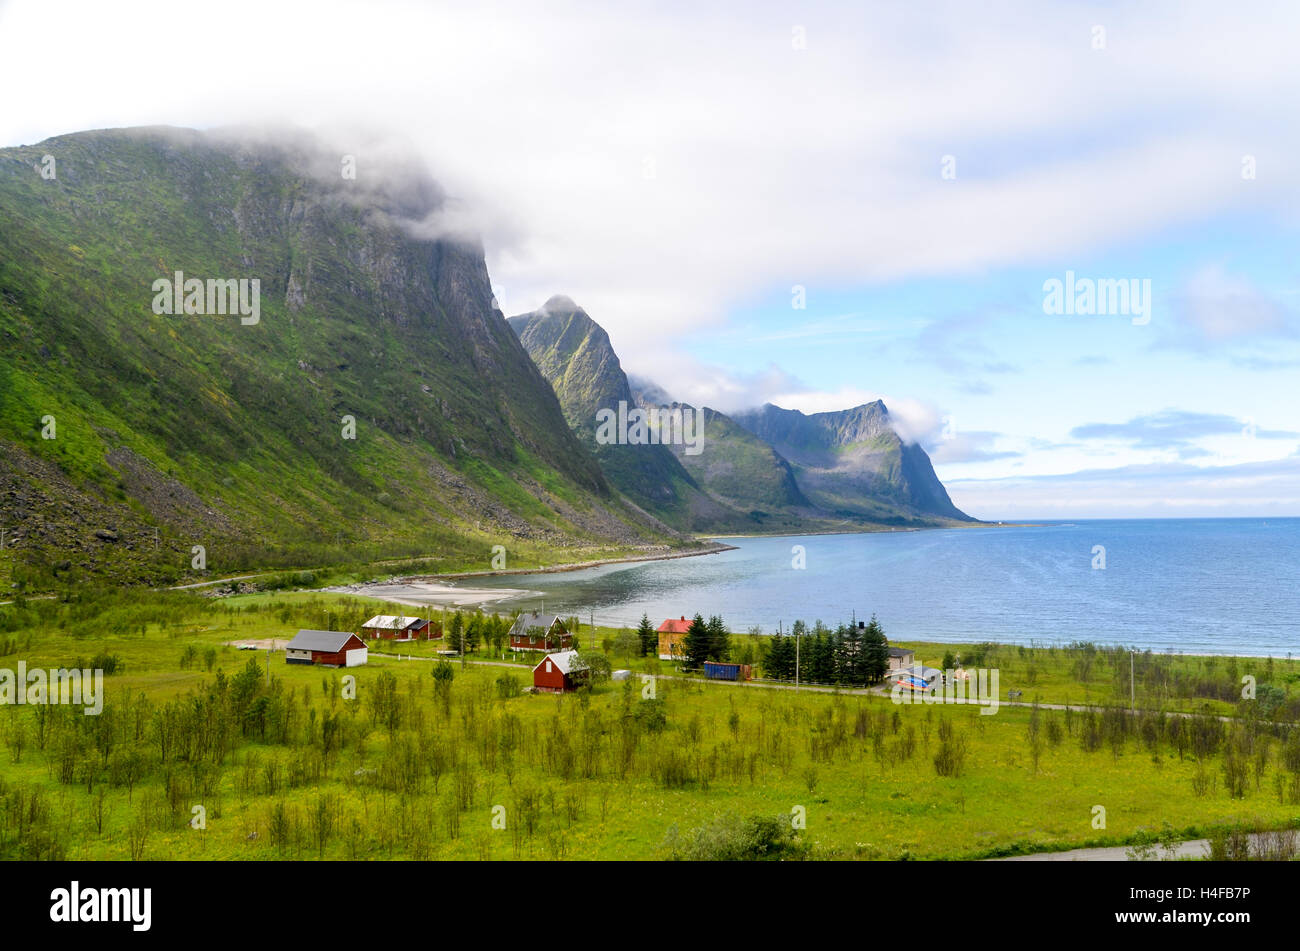 Clouds taking on the rough landscape of Senja, Norway, near a village - Stock Image